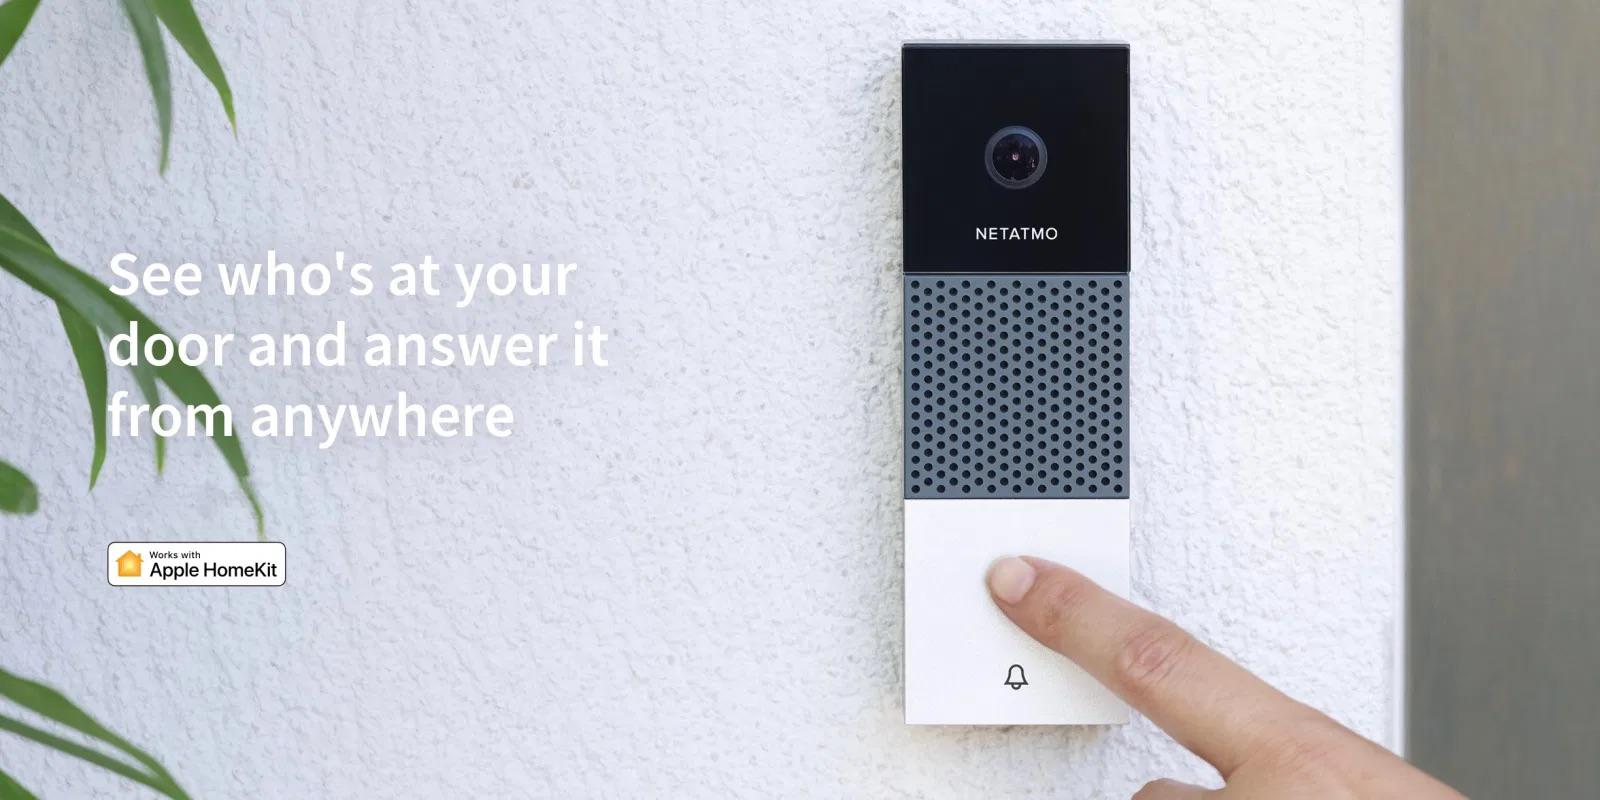 Who else pre ordered Sonat Netatmo The official launch is tomorrow